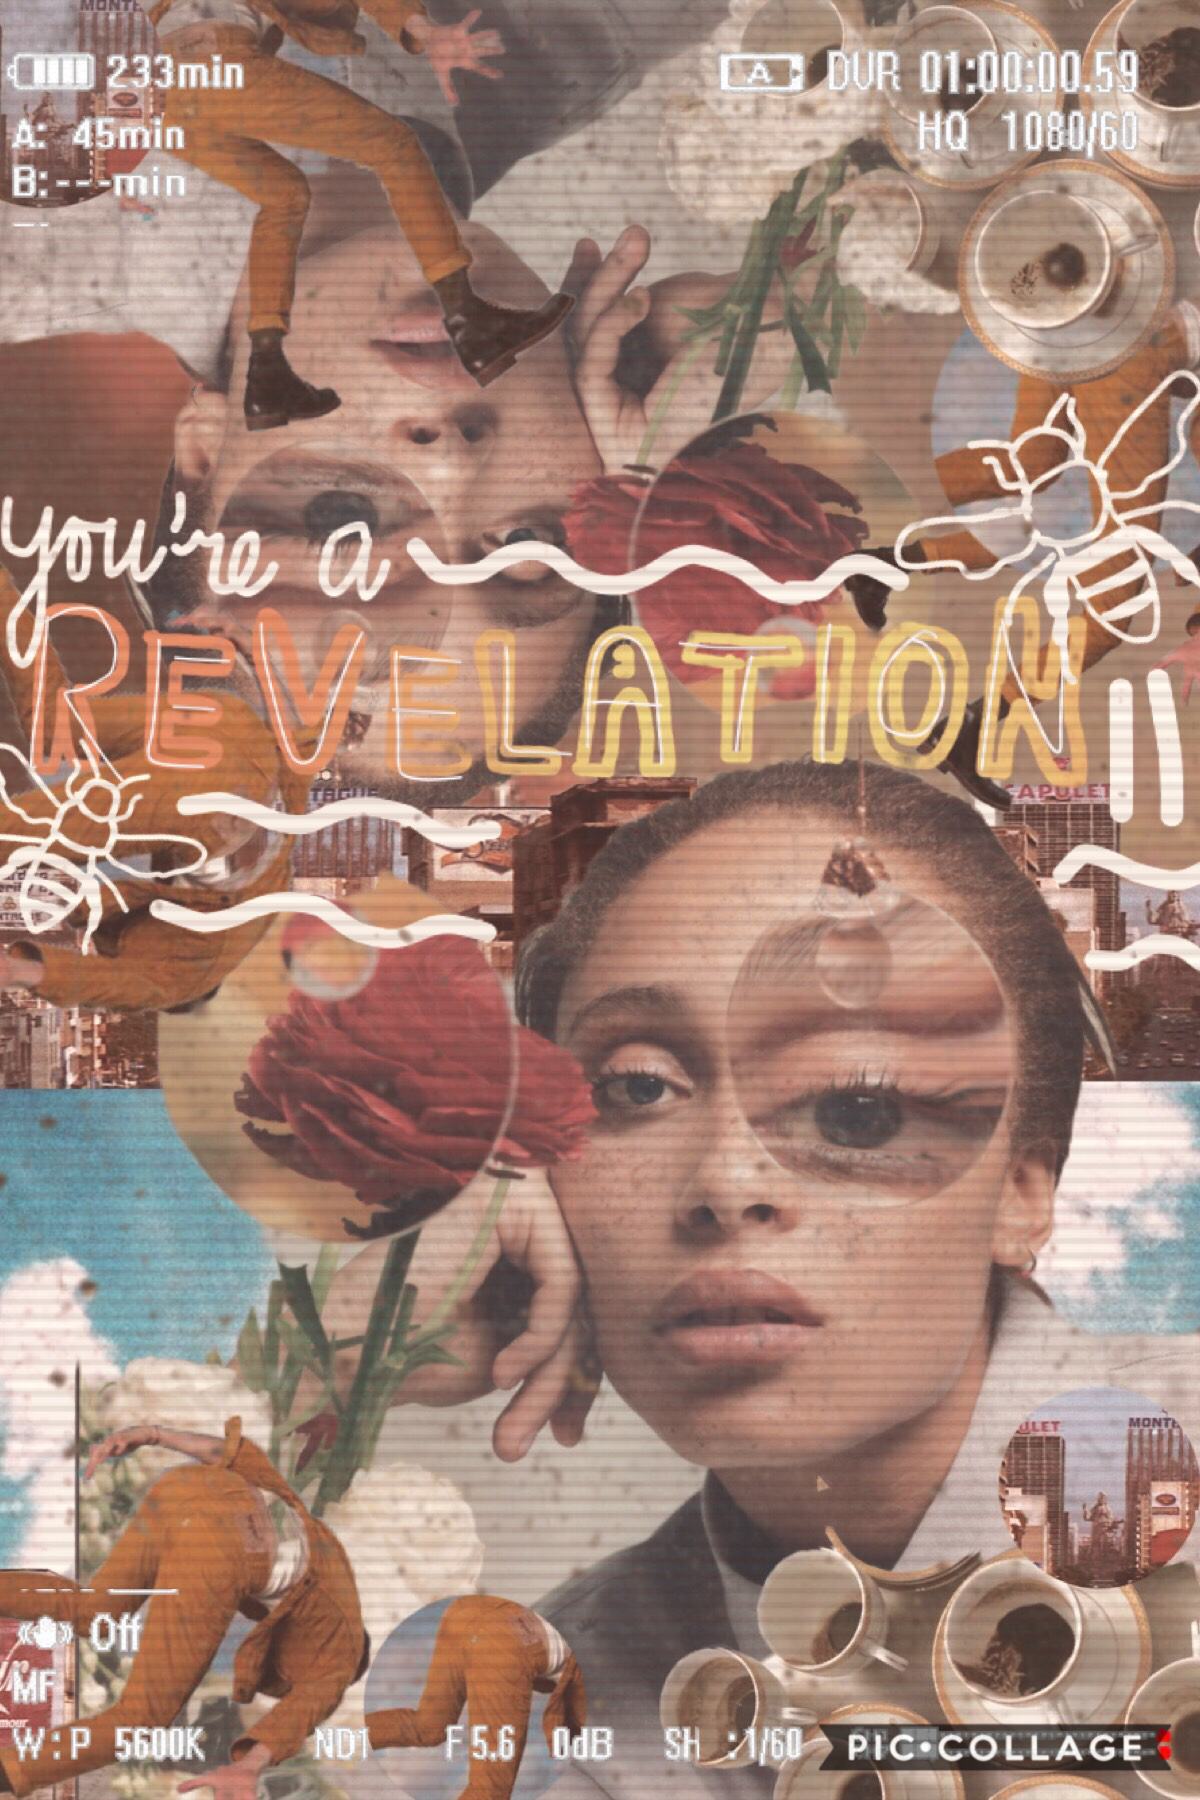 tap i quite like revelation—you should go listen to it. it's good. anywaysSss how are you all because im just swell. and i have to finish my LOADS of homework.  QOTD: what's your homework today lol AOTD: an essay and annotate a packet